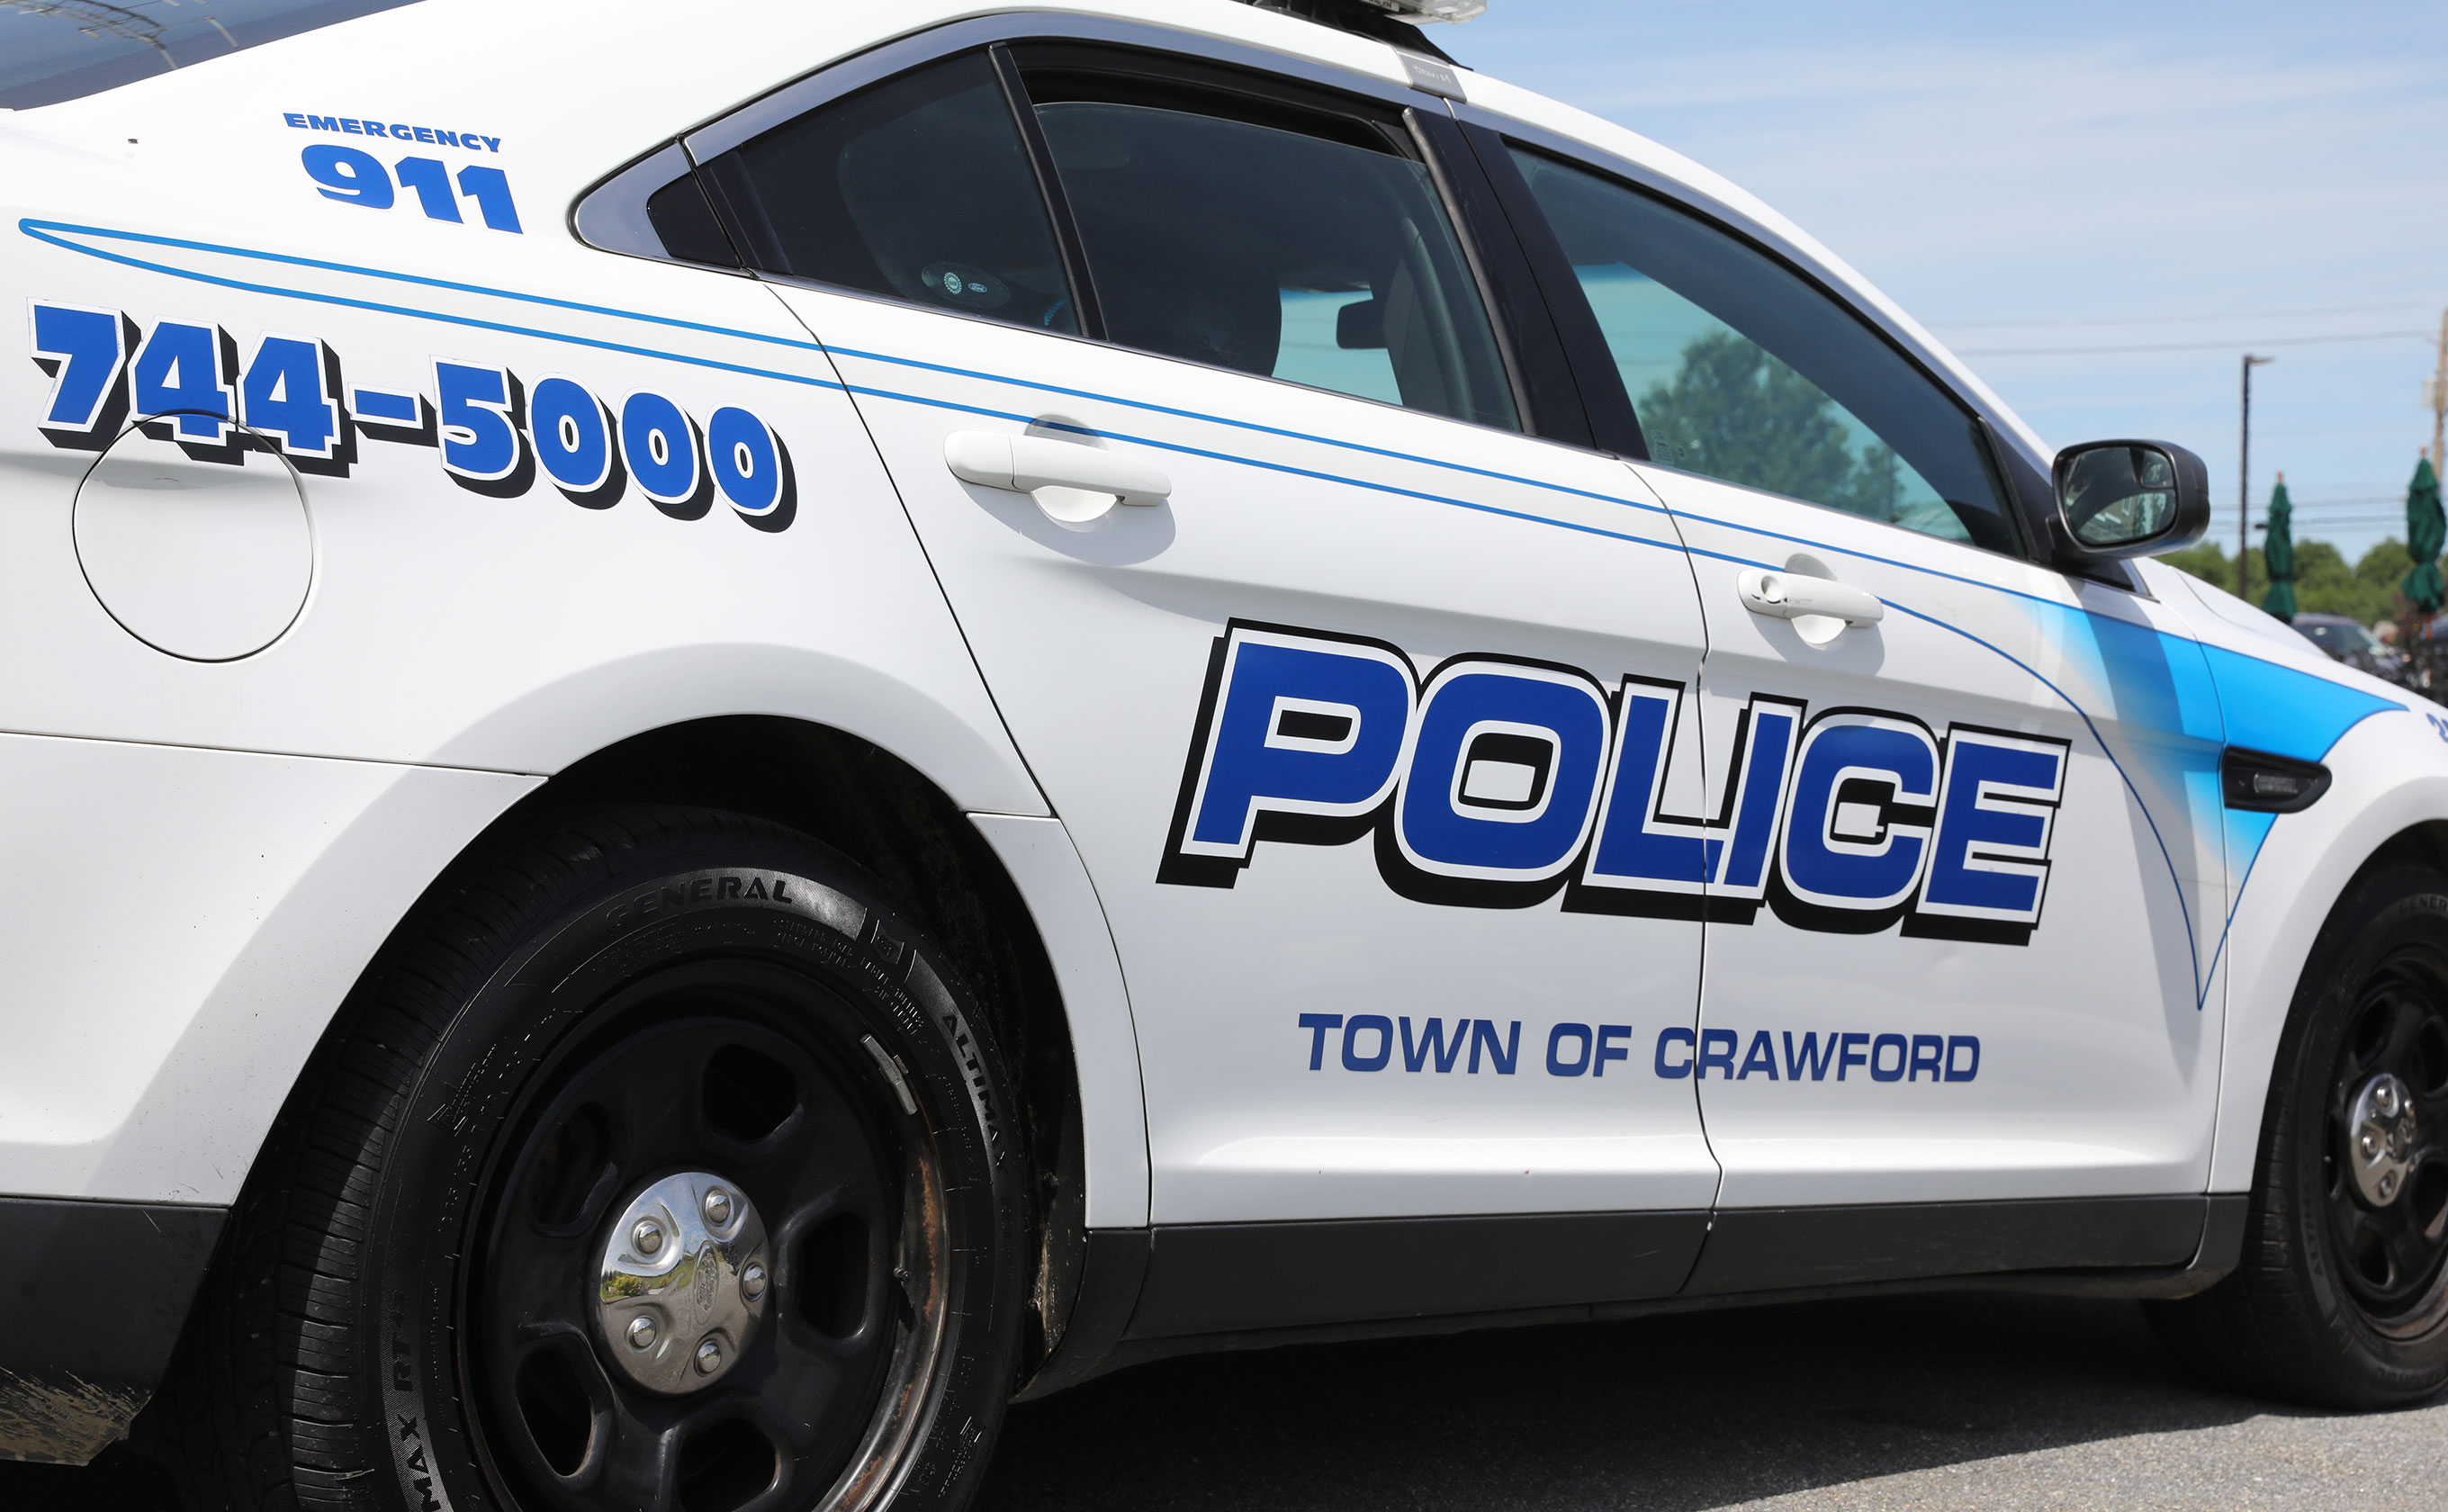 The side of a Town of Crawford police car